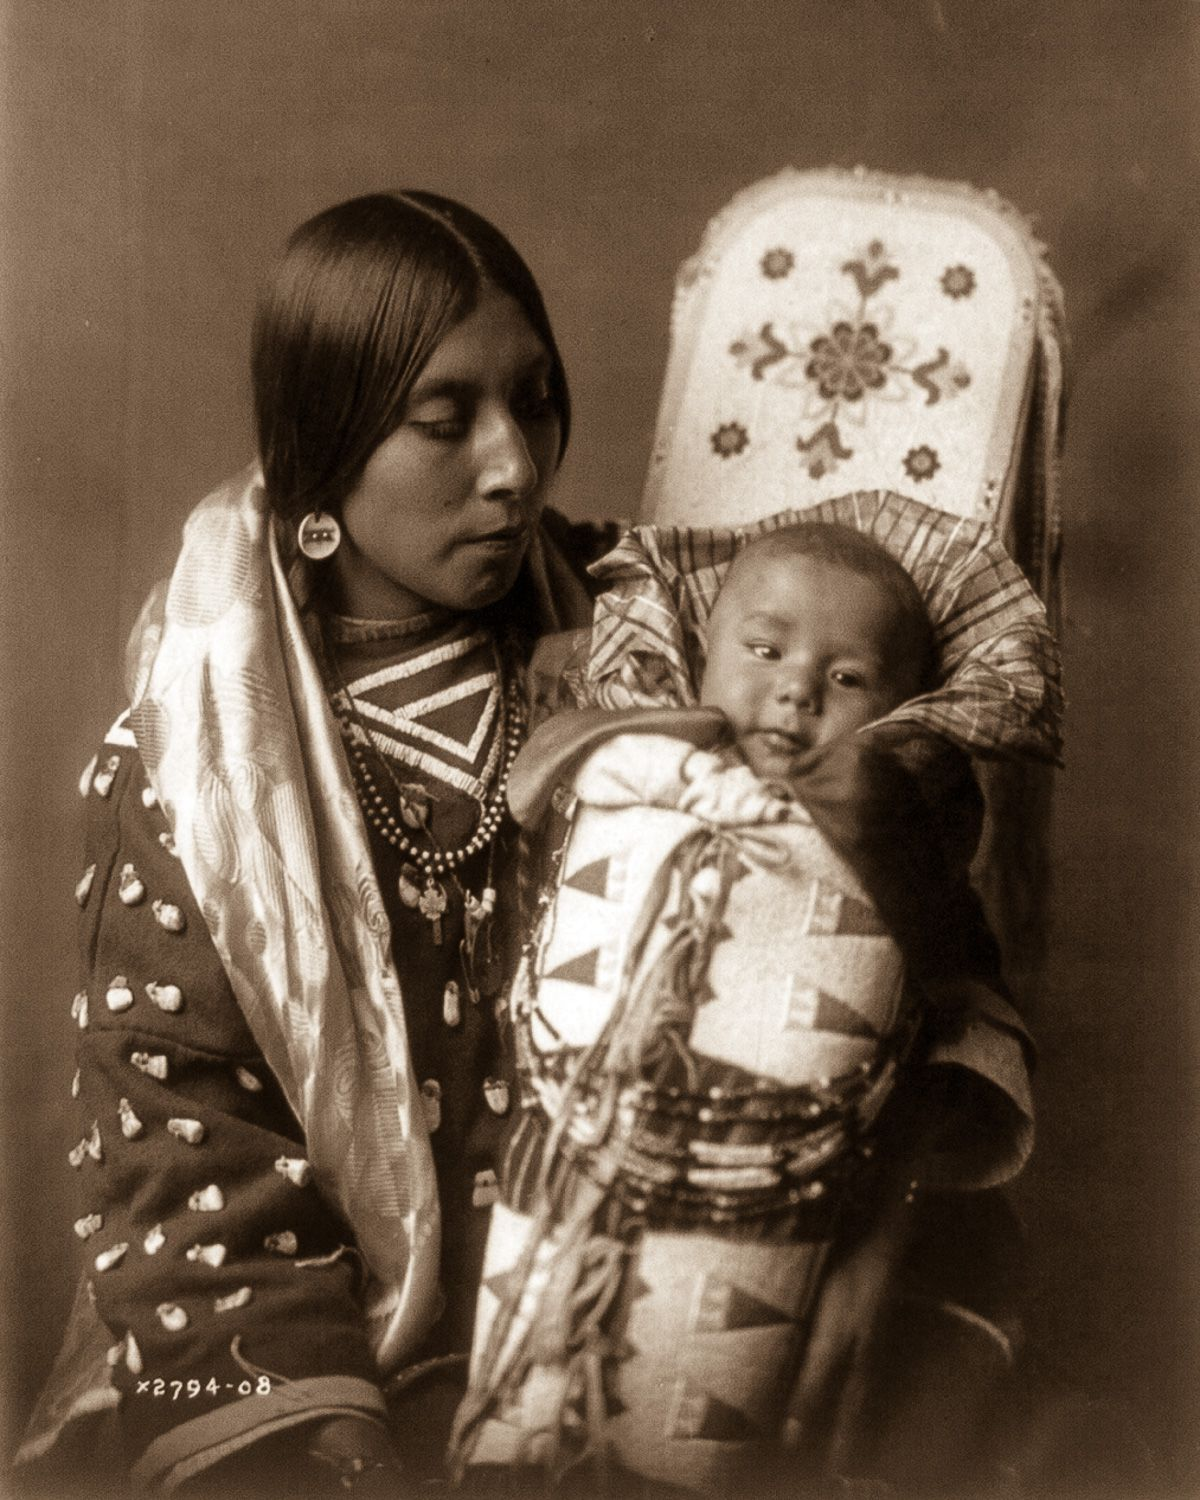 An Apsaroke mother and child, 1908.  ©EDWARD S. CURTIS/LIBRARY OF CONGRESS